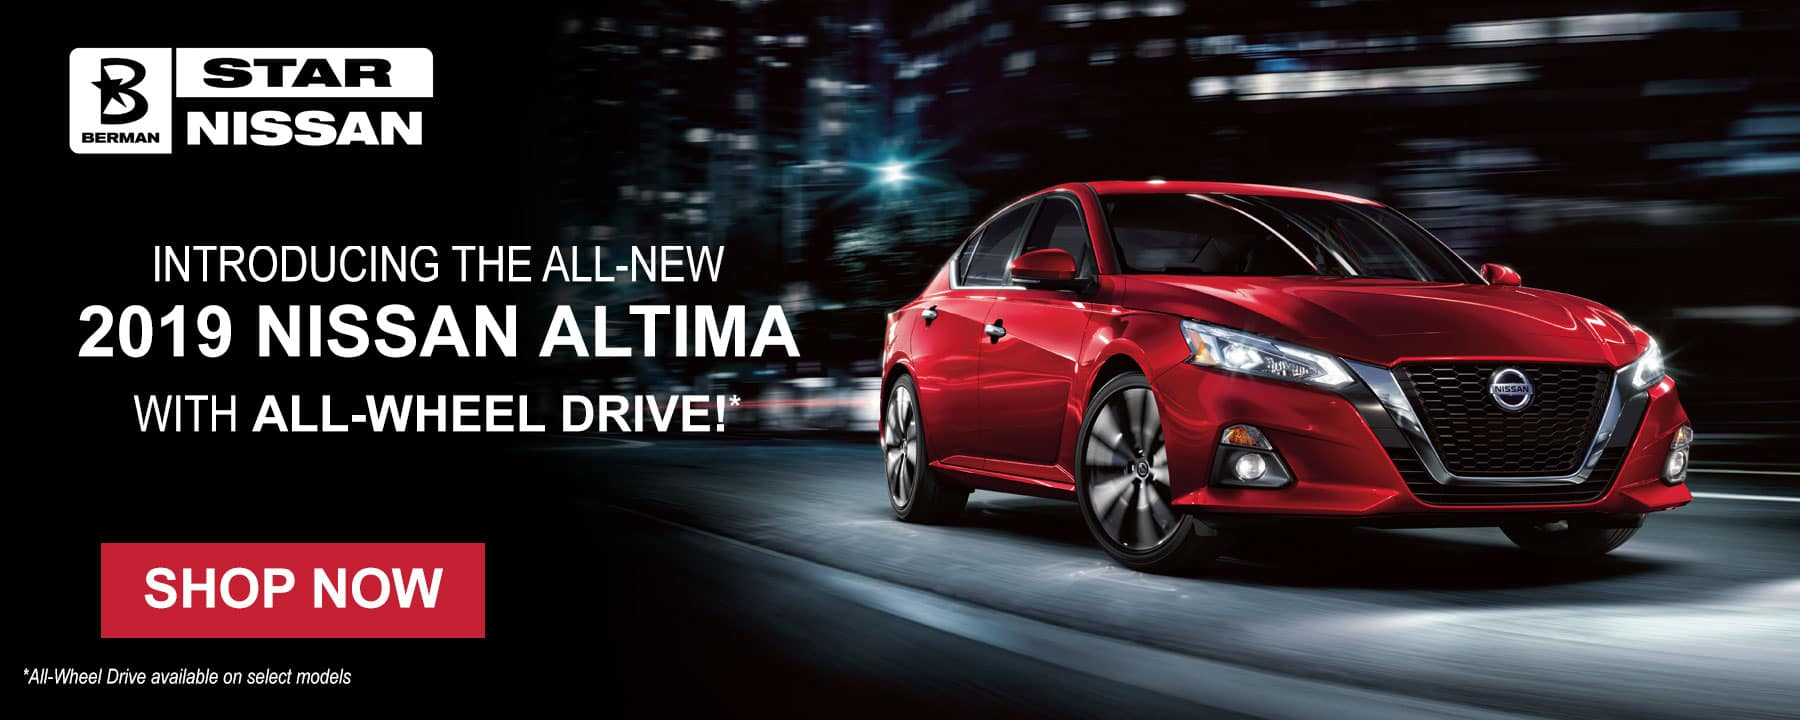 Introducing the all-new 2019 Nissan Altima with All-Wheel Drive!